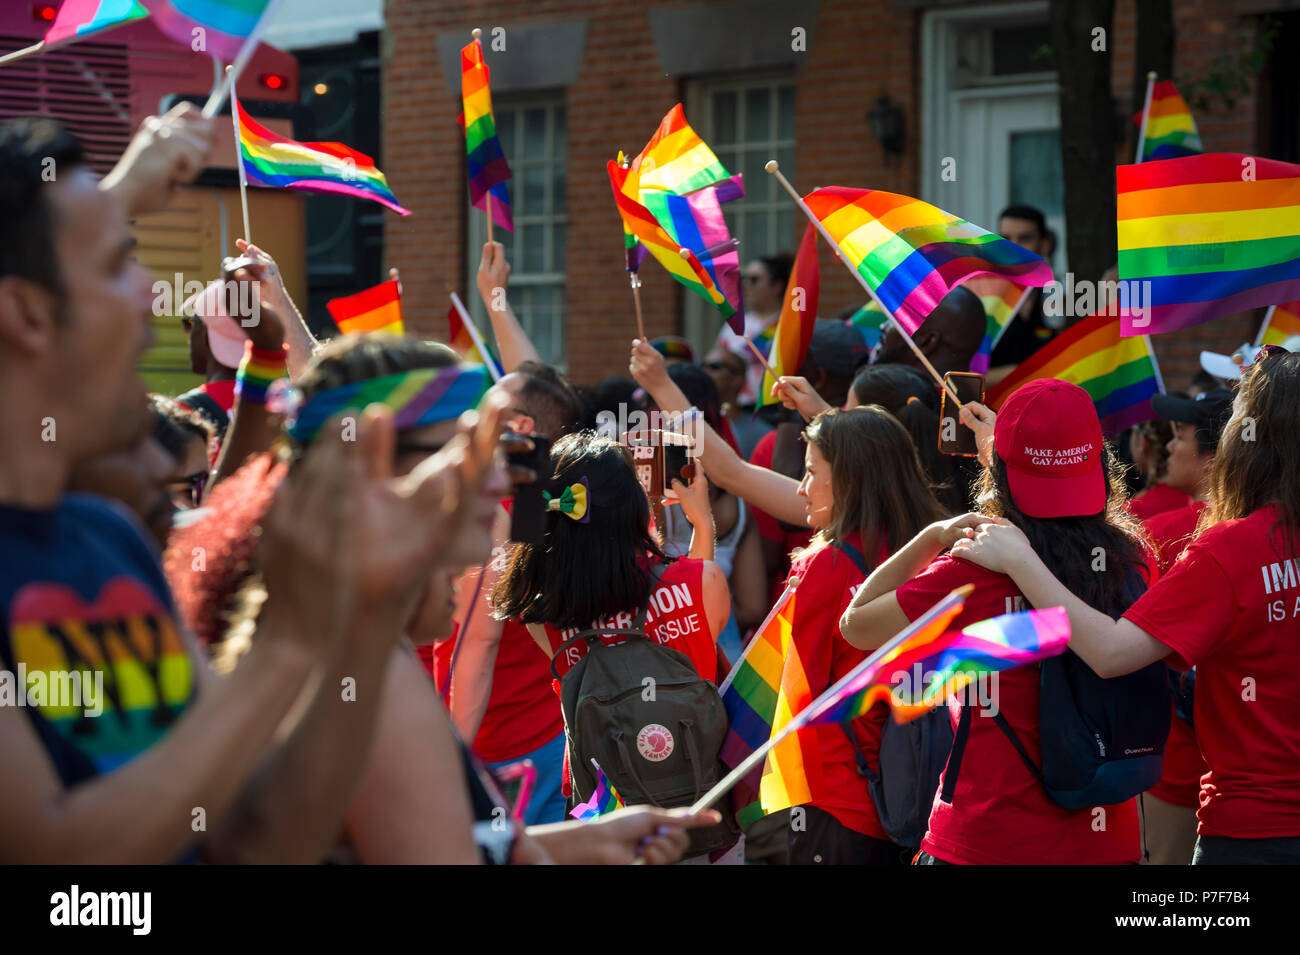 NEW YORK CITY - JUNE 25, 2017: Supporters wave rainbows flags on the sidelines of the annual Pride Parade as it passes through Greenwich Village. - Stock Image